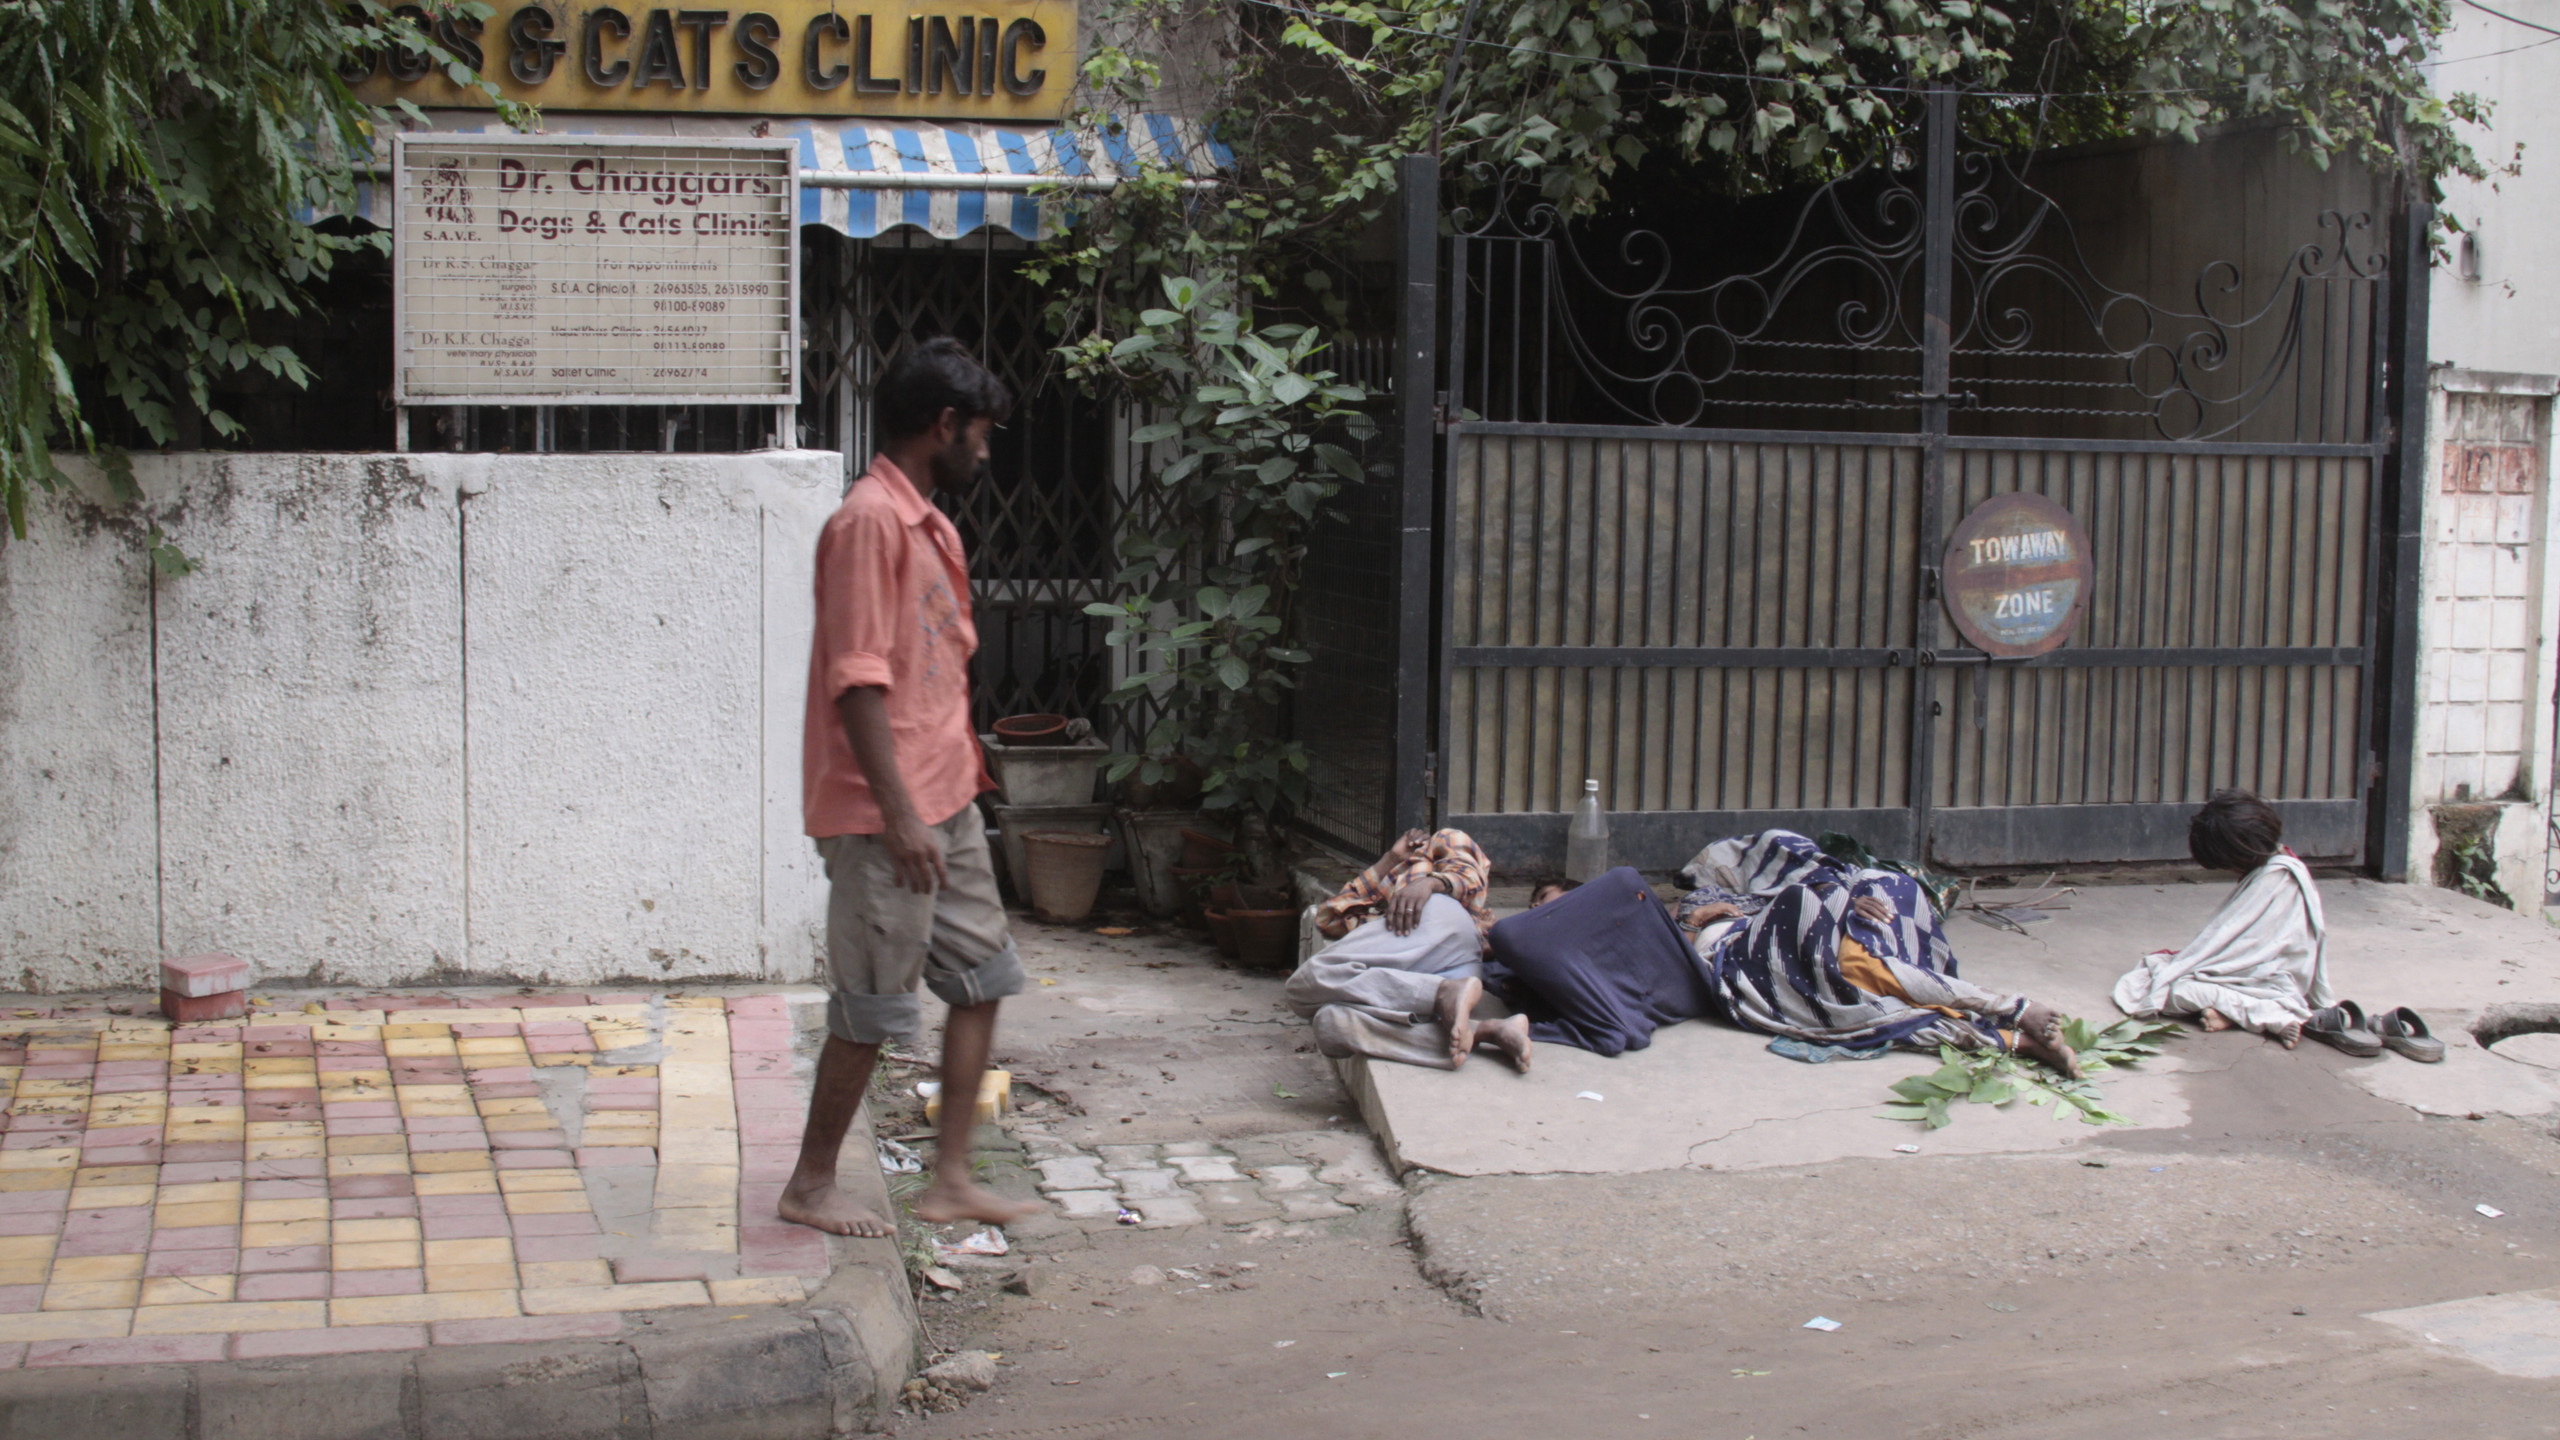 A passerby stares at a migrant worker family sleeping outside a veterinary clinic